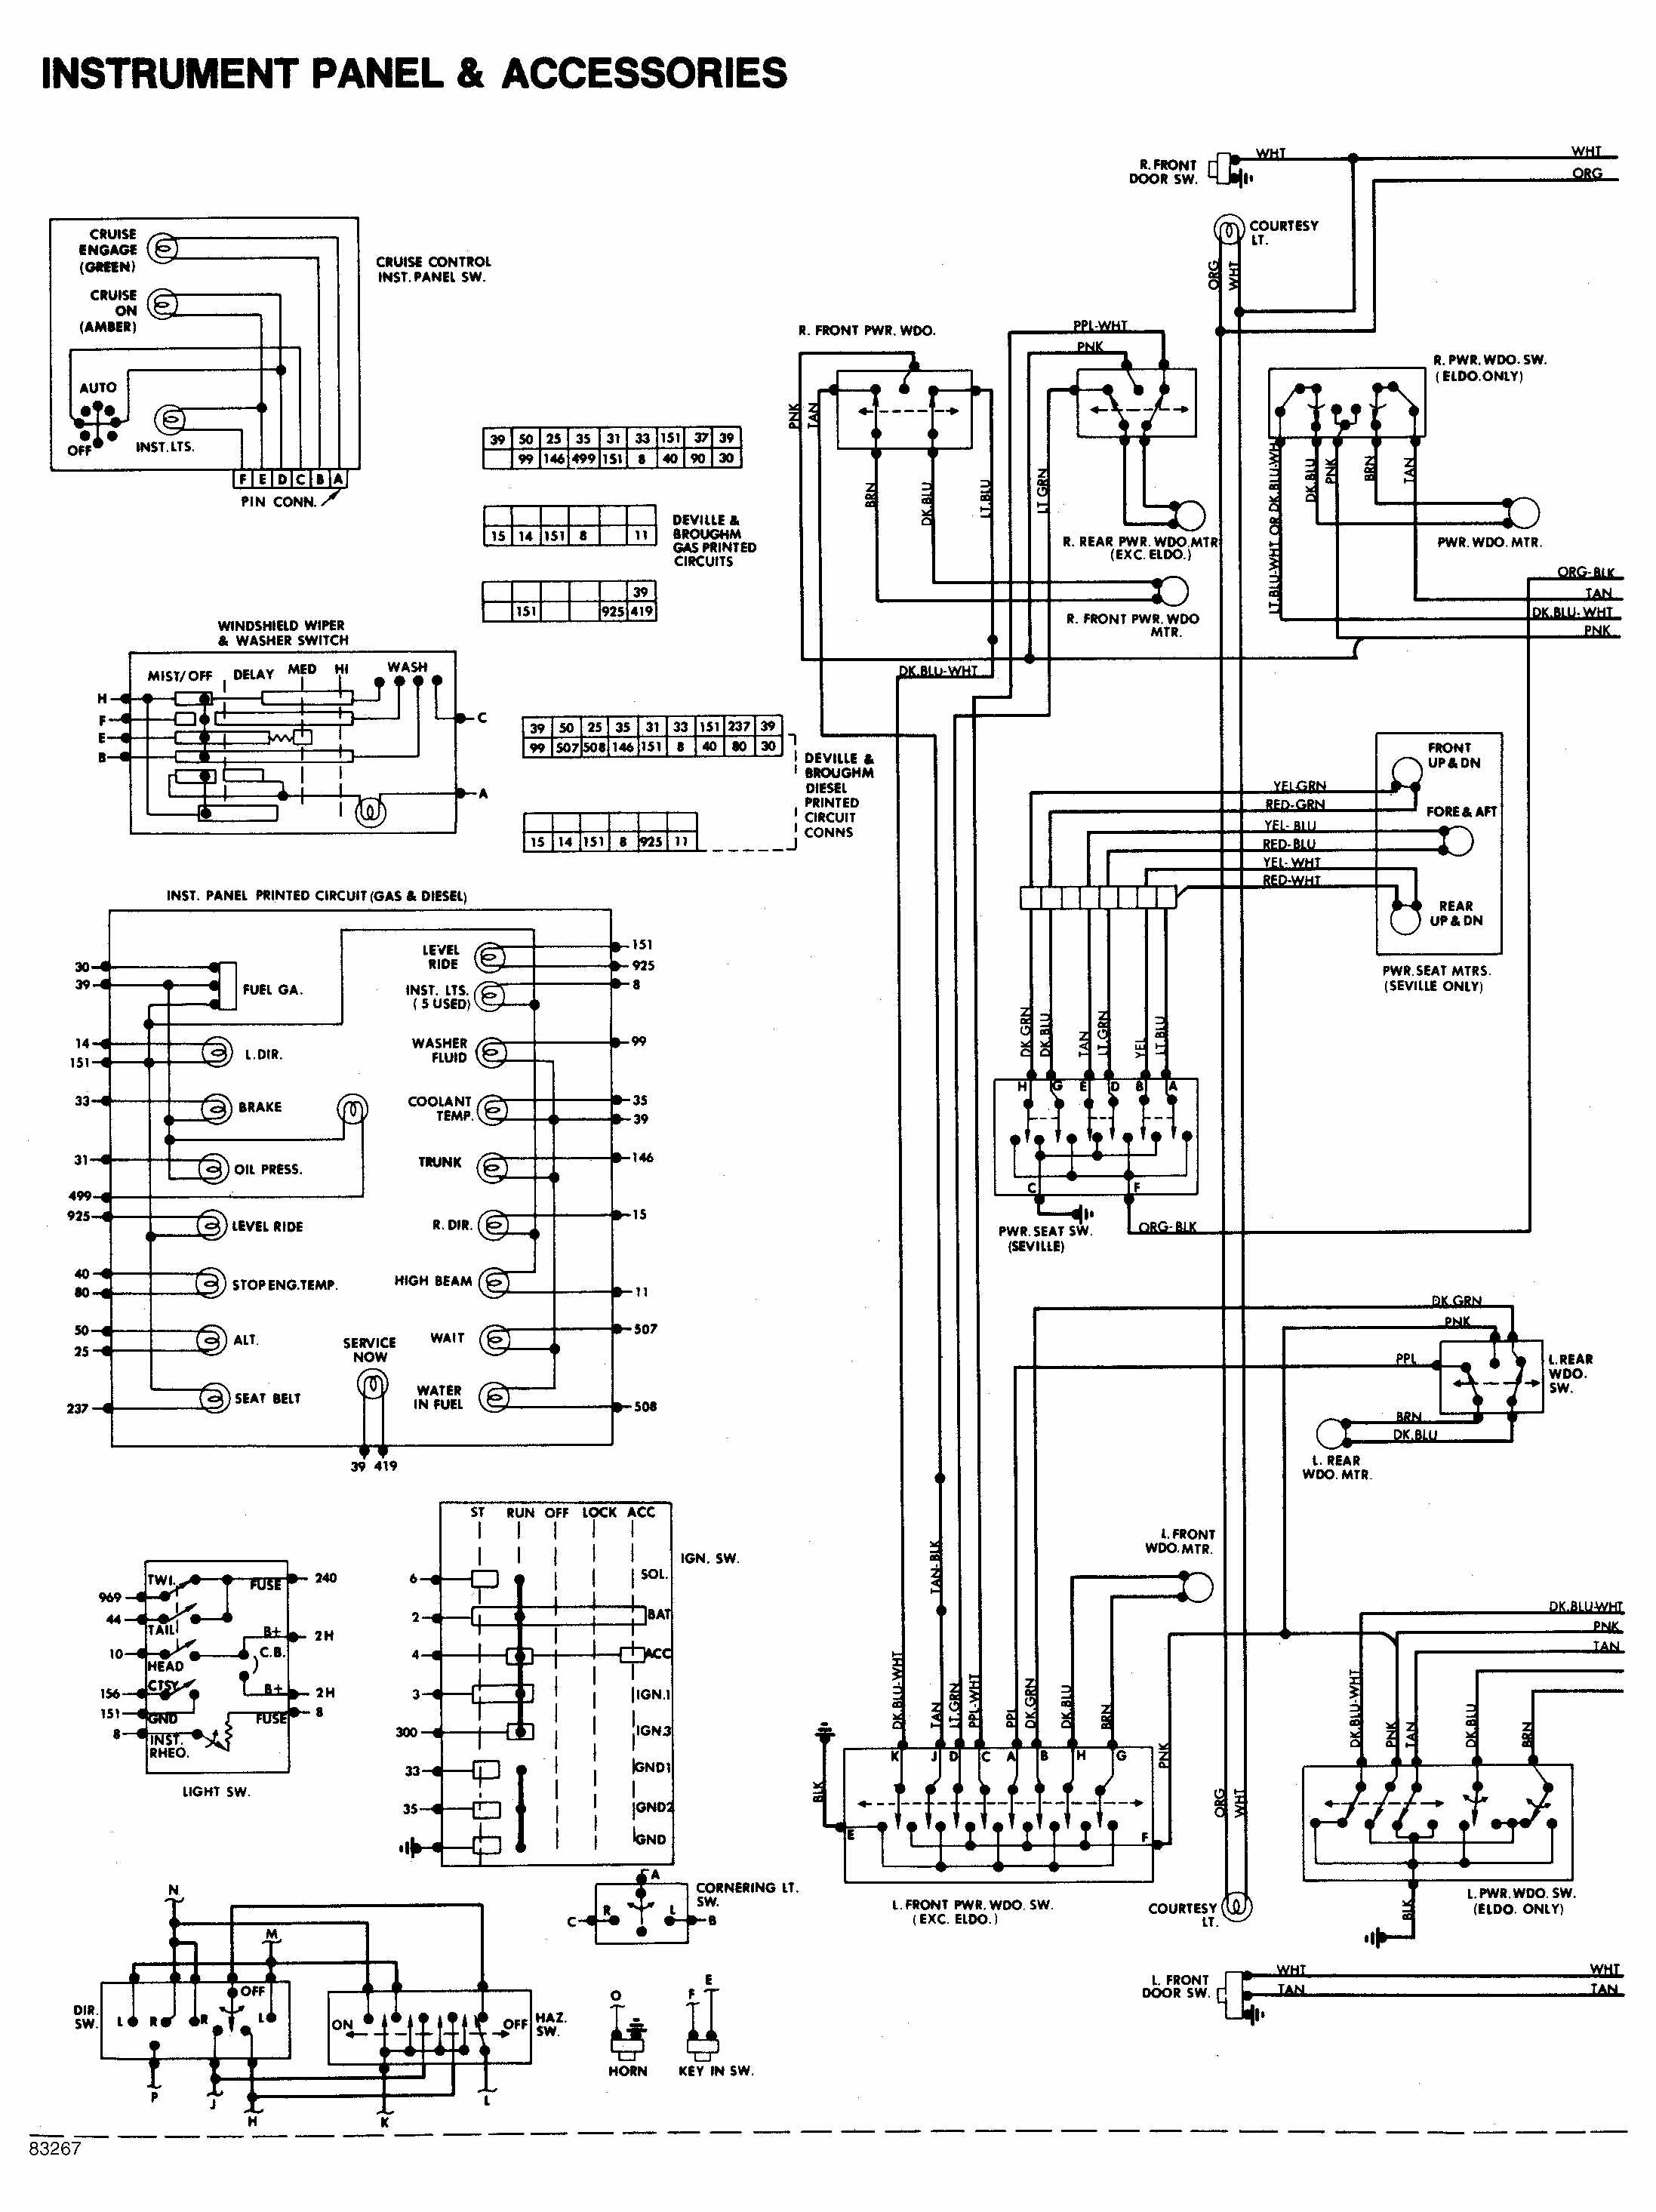 1957 Chevrolet Wiring | Wiring Diagram on 1957 chevy truck wiring diagram, 1955 chevy wiring diagram, 1957 chevy fuse box diagram,